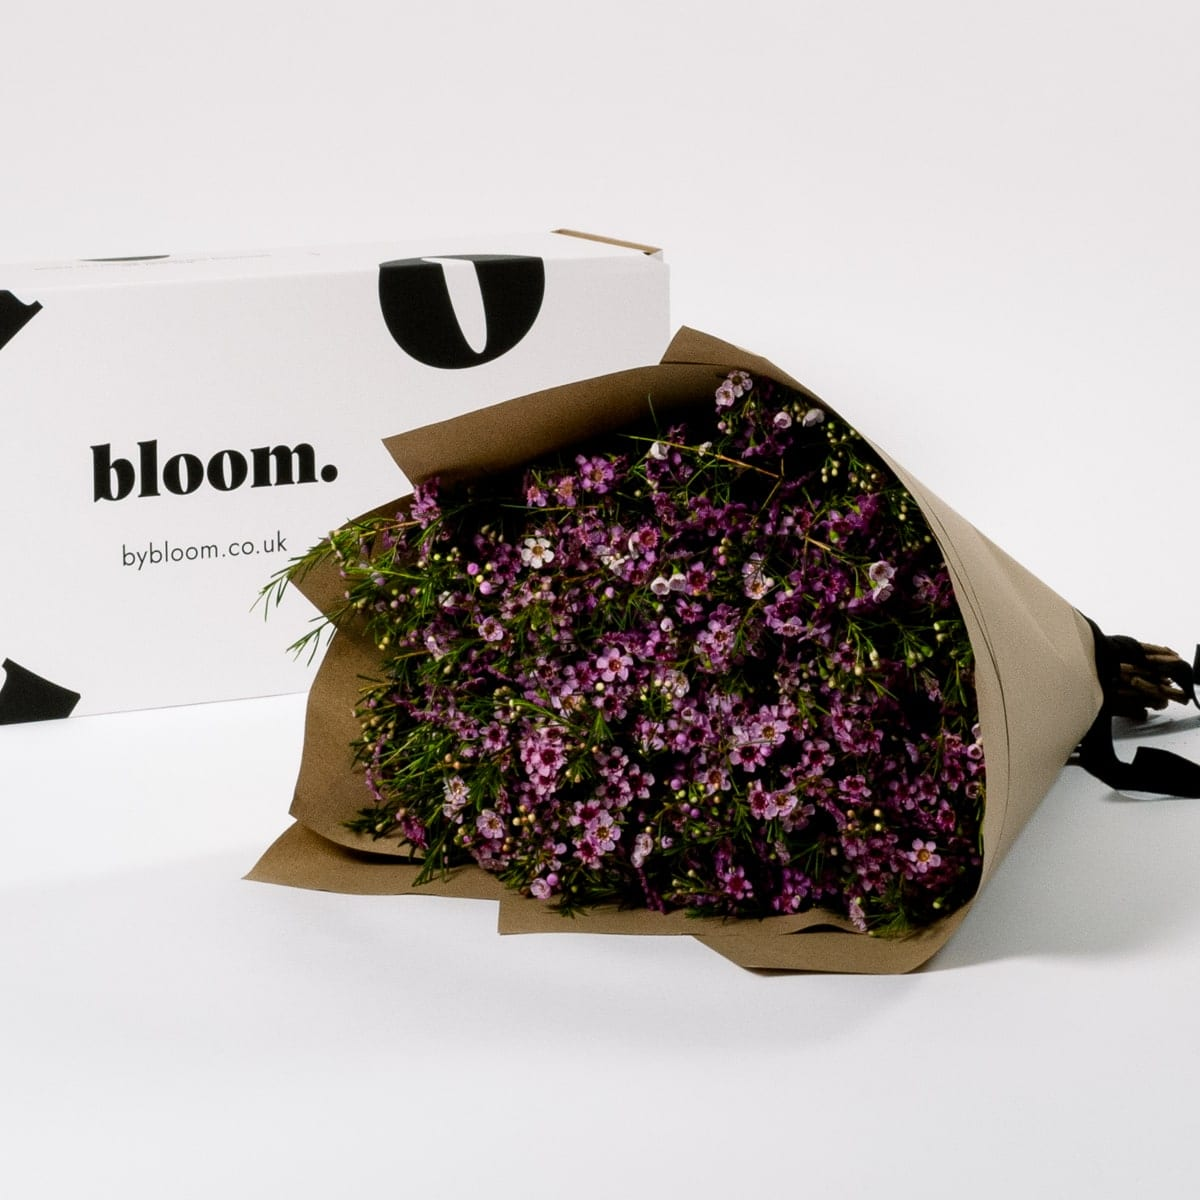 Bloom Flower Delivery | Cotton Candy Pink Wax Flower